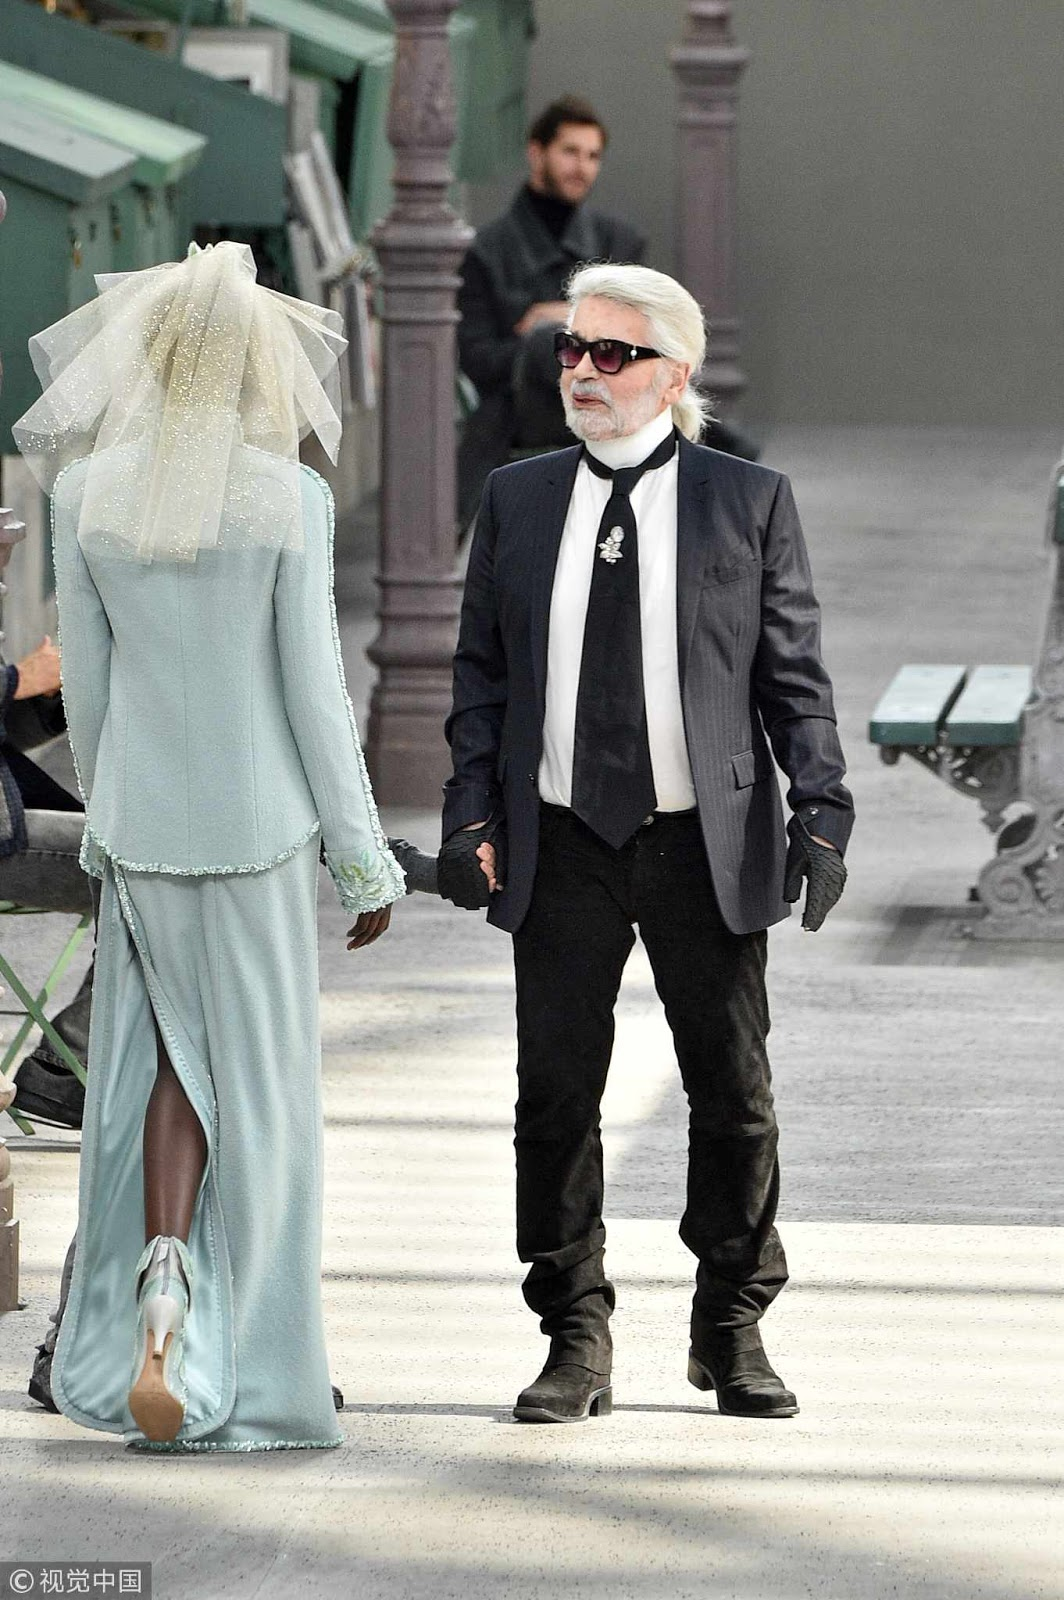 Legendary designer Karl Lagerfeld reaches for immortality with Chanel Paris show